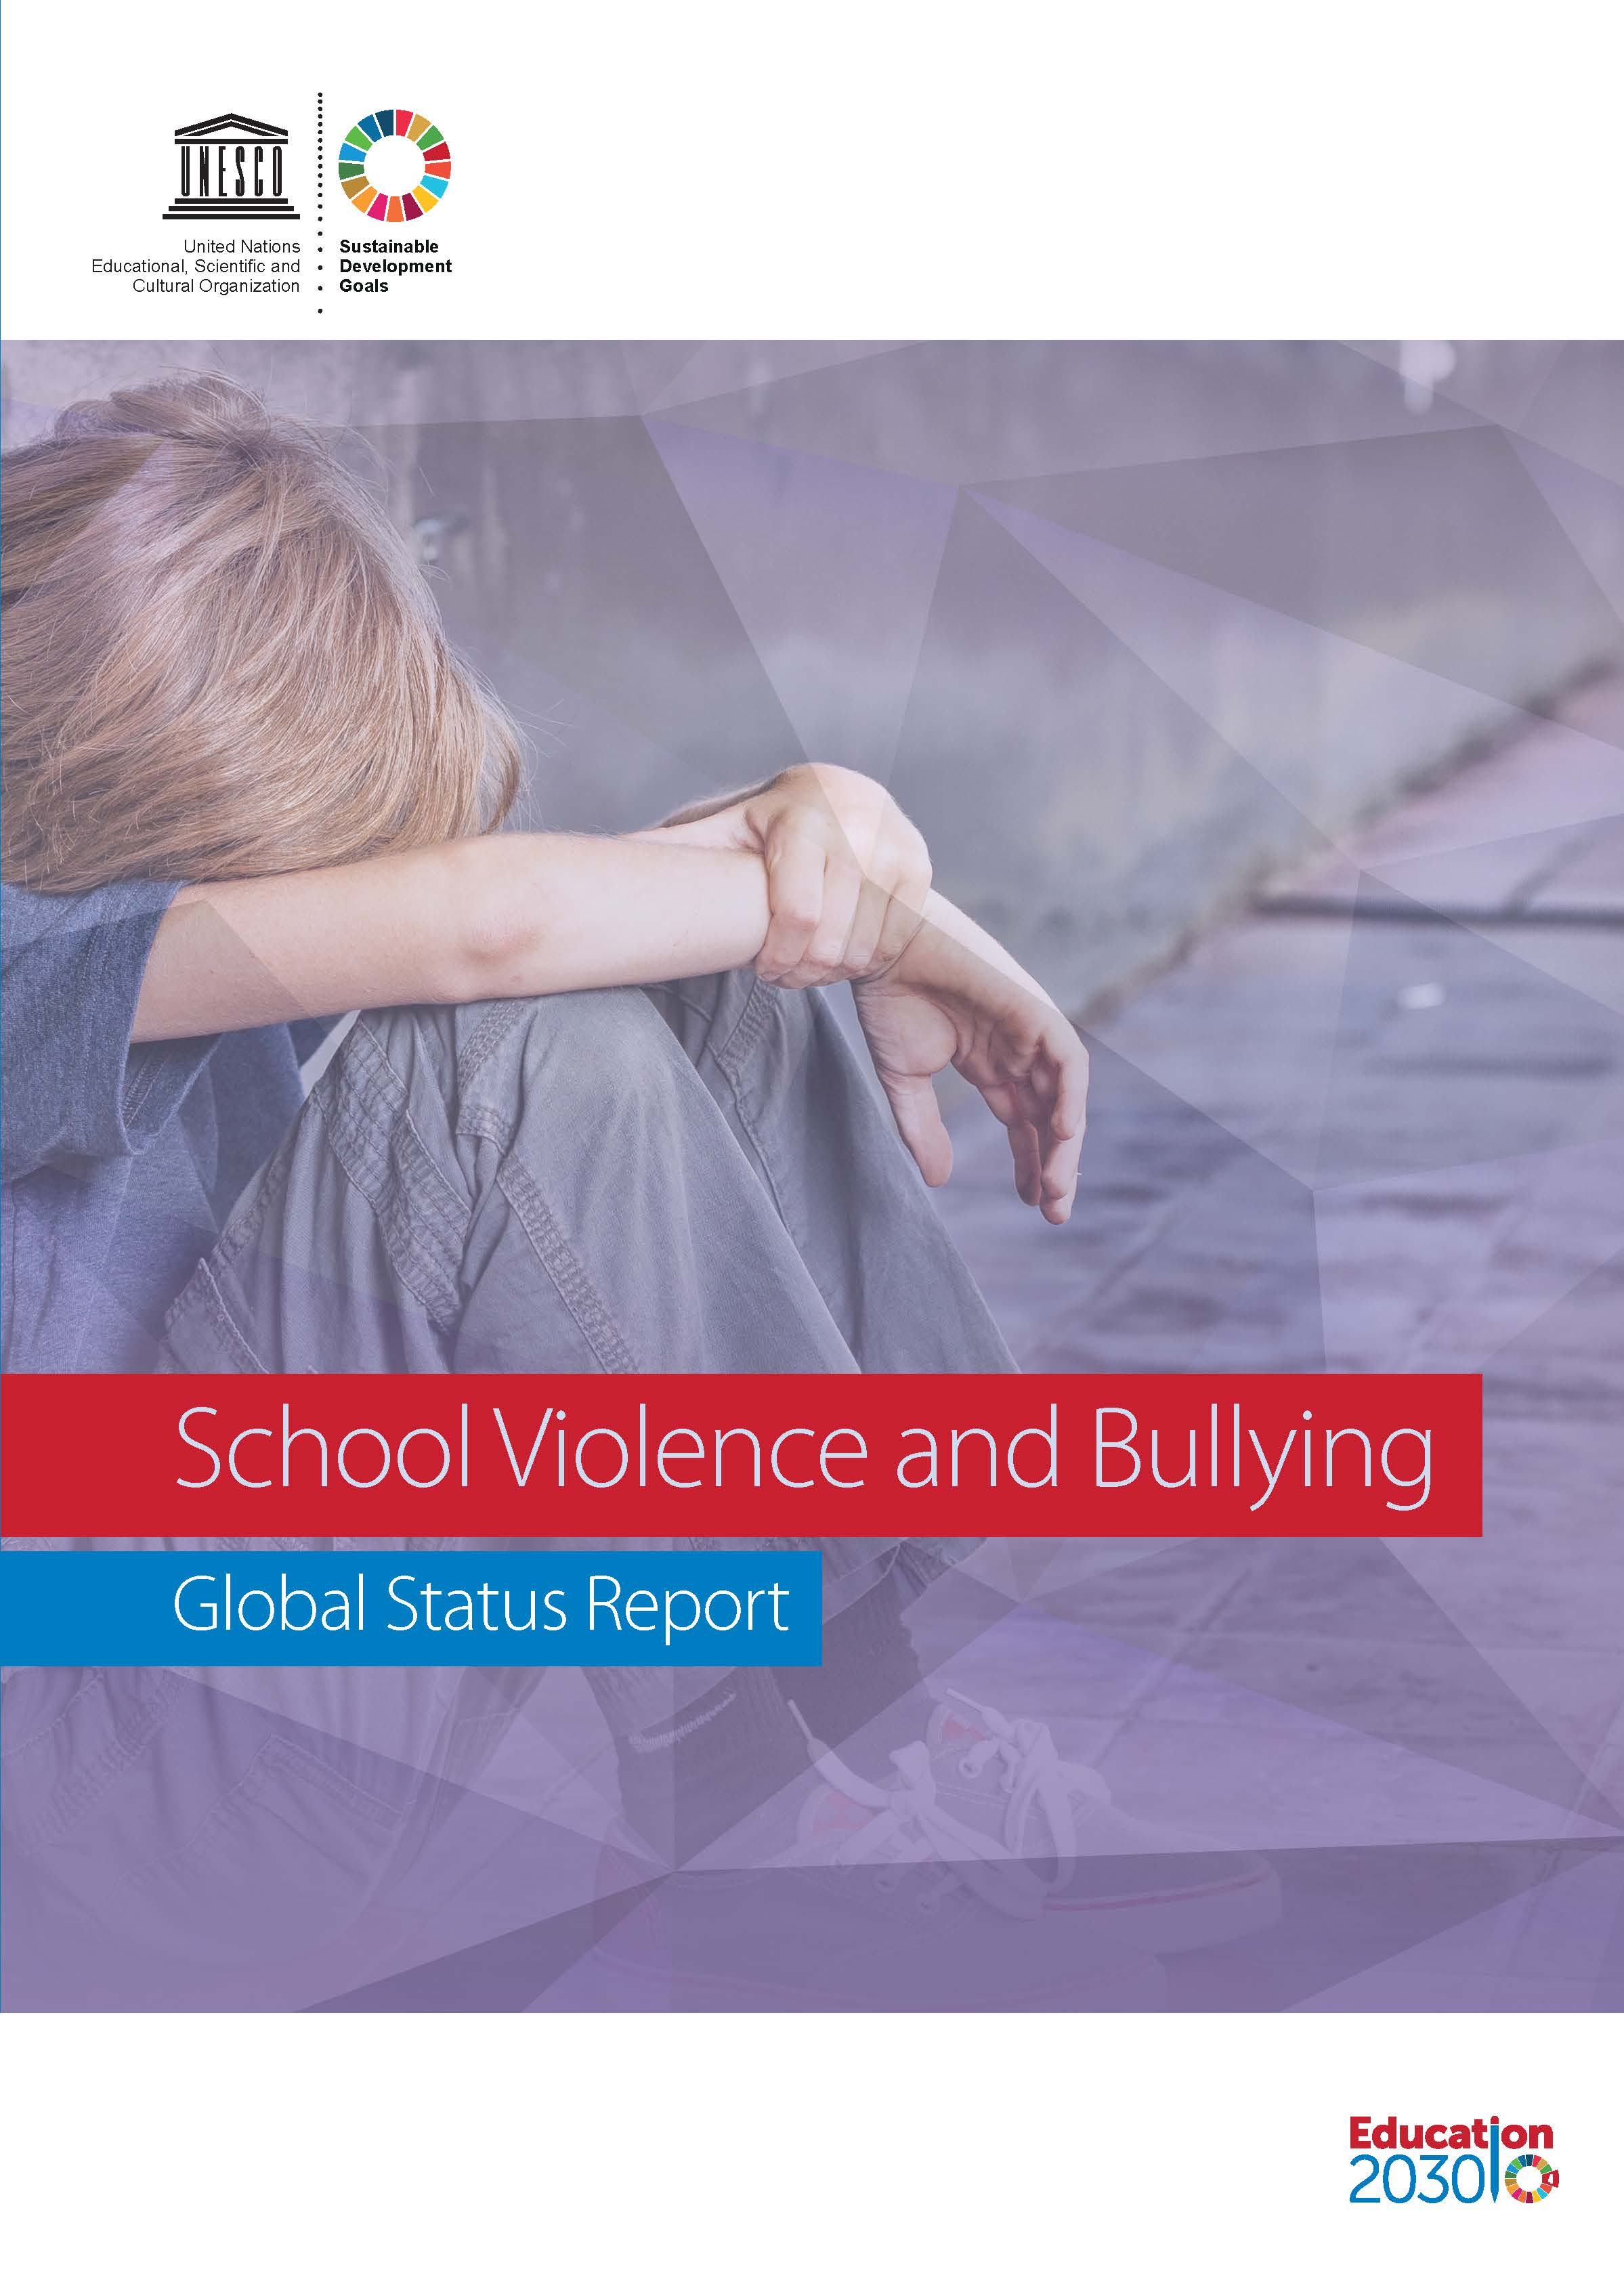 School Violence and Bullying